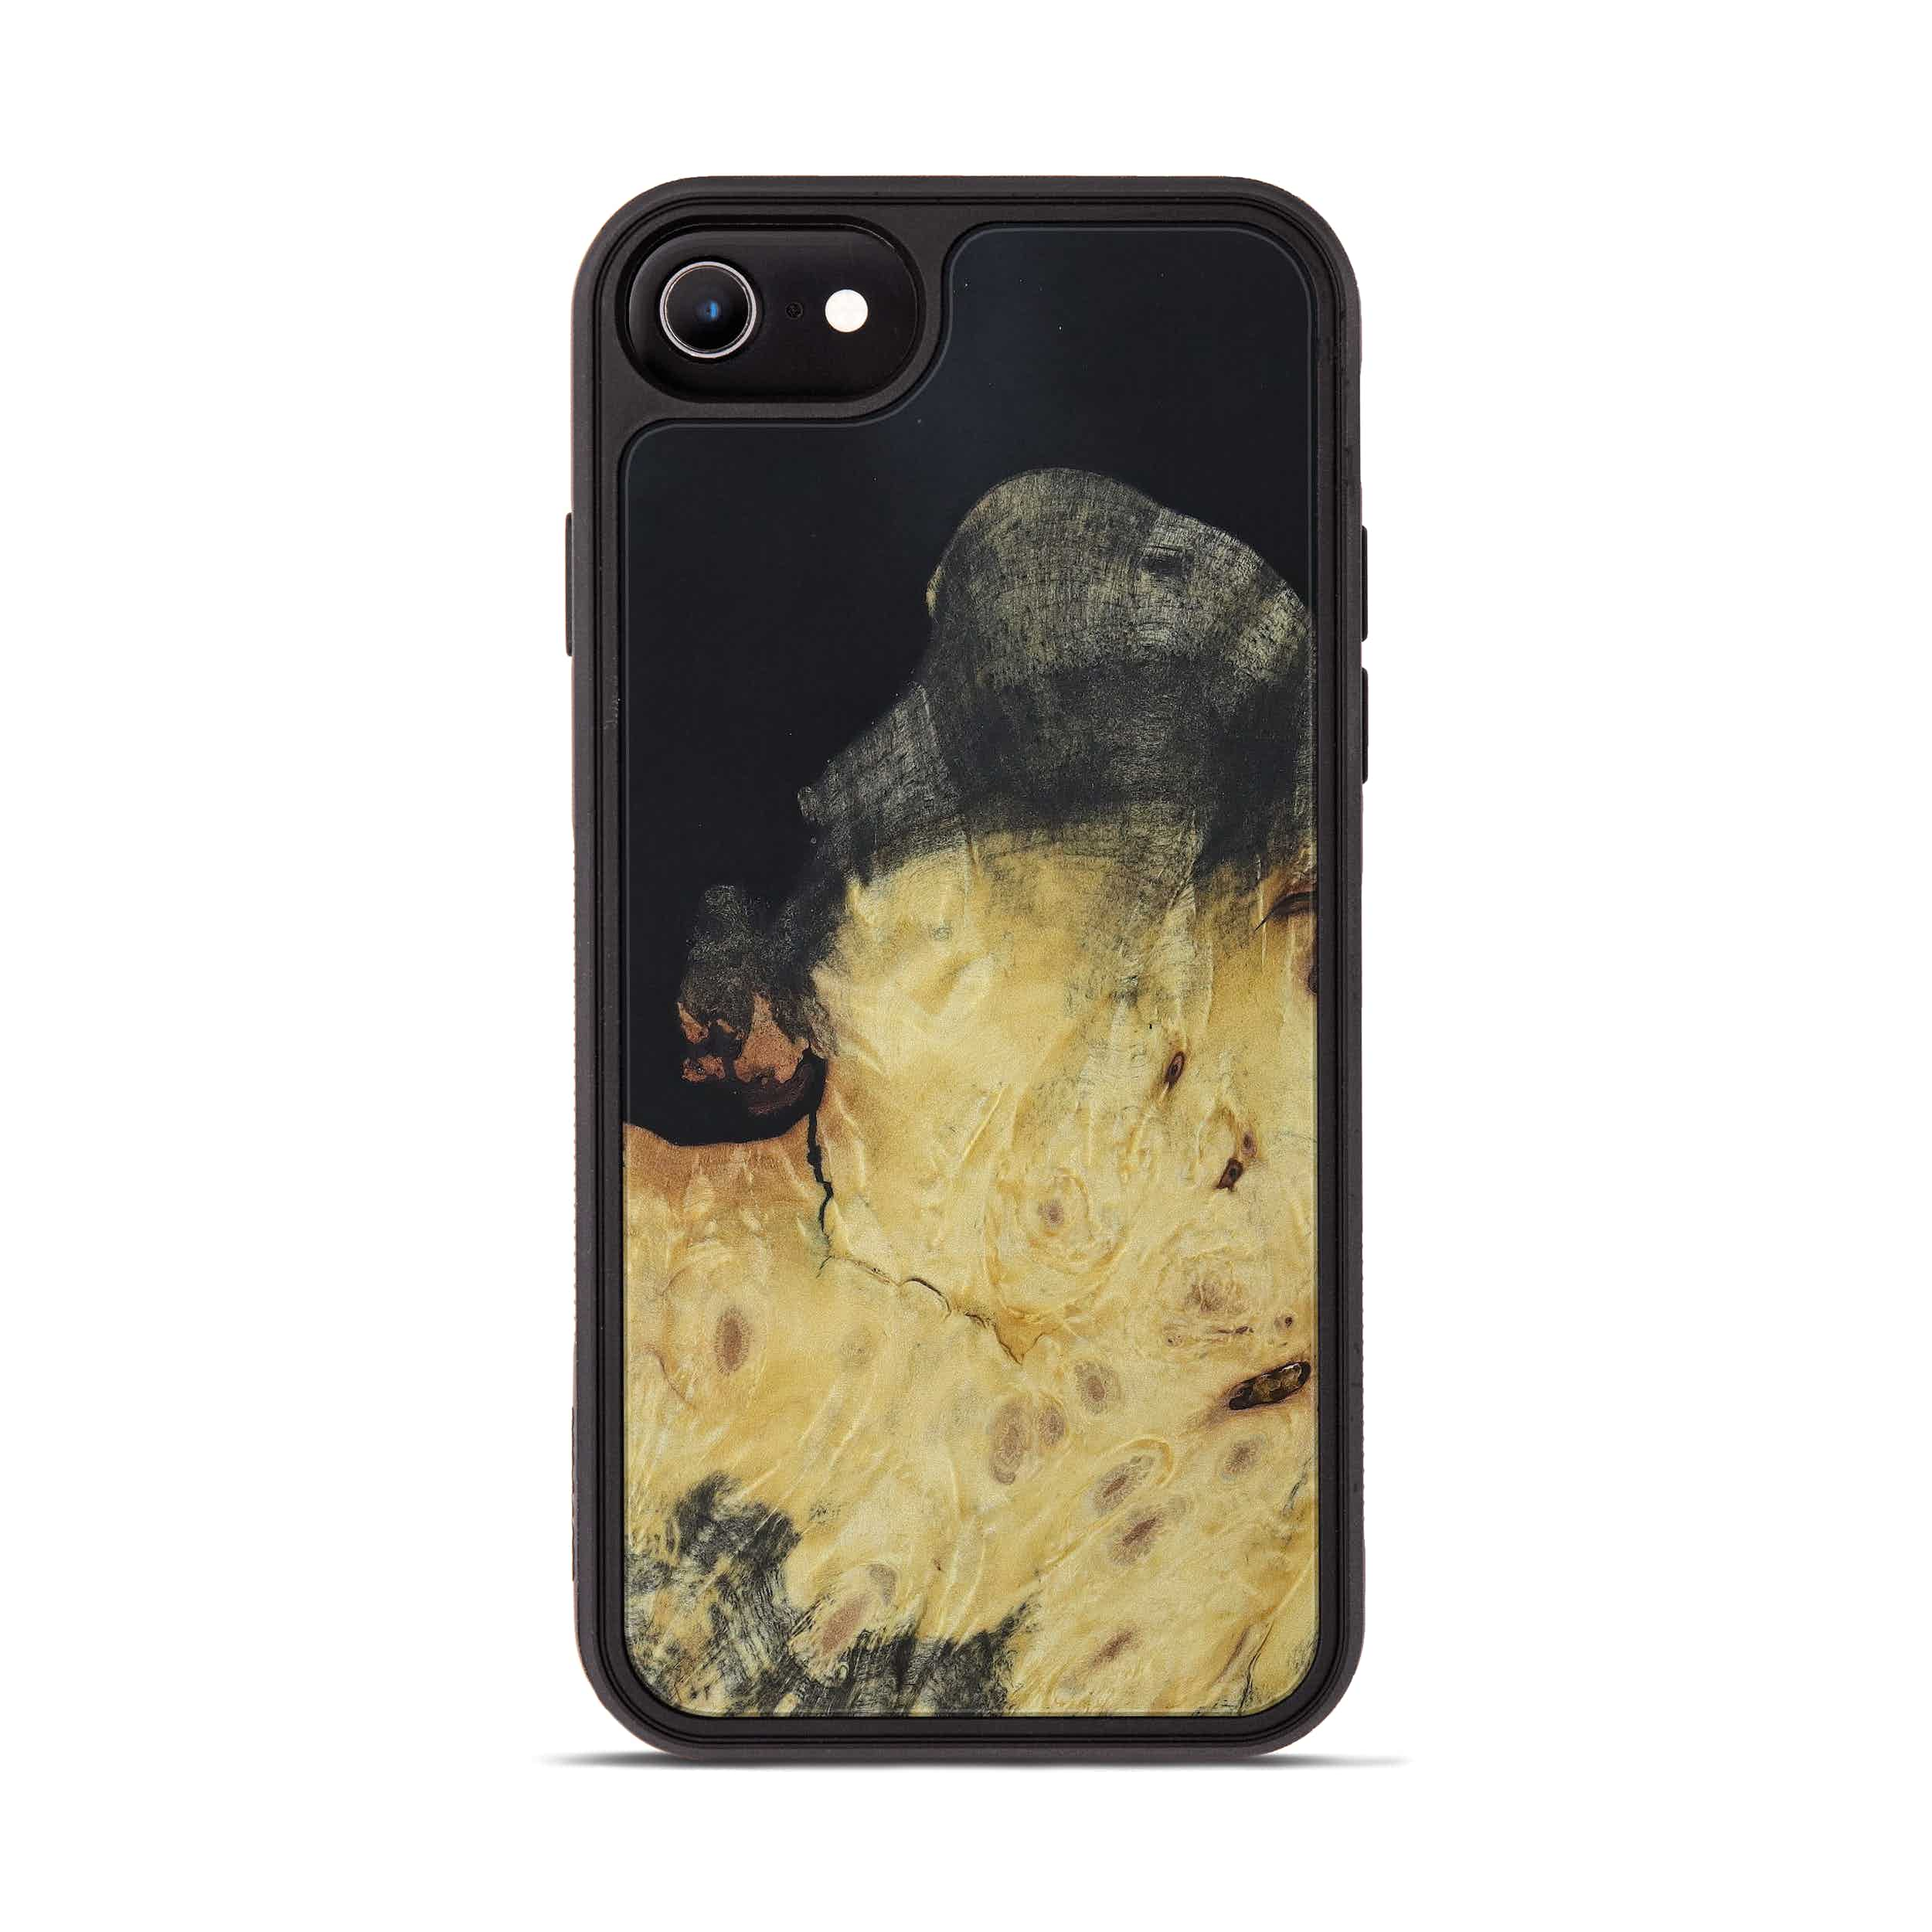 iPhone 6s Wood+Resin Phone Case - Sinh (Pure Black, 397848)